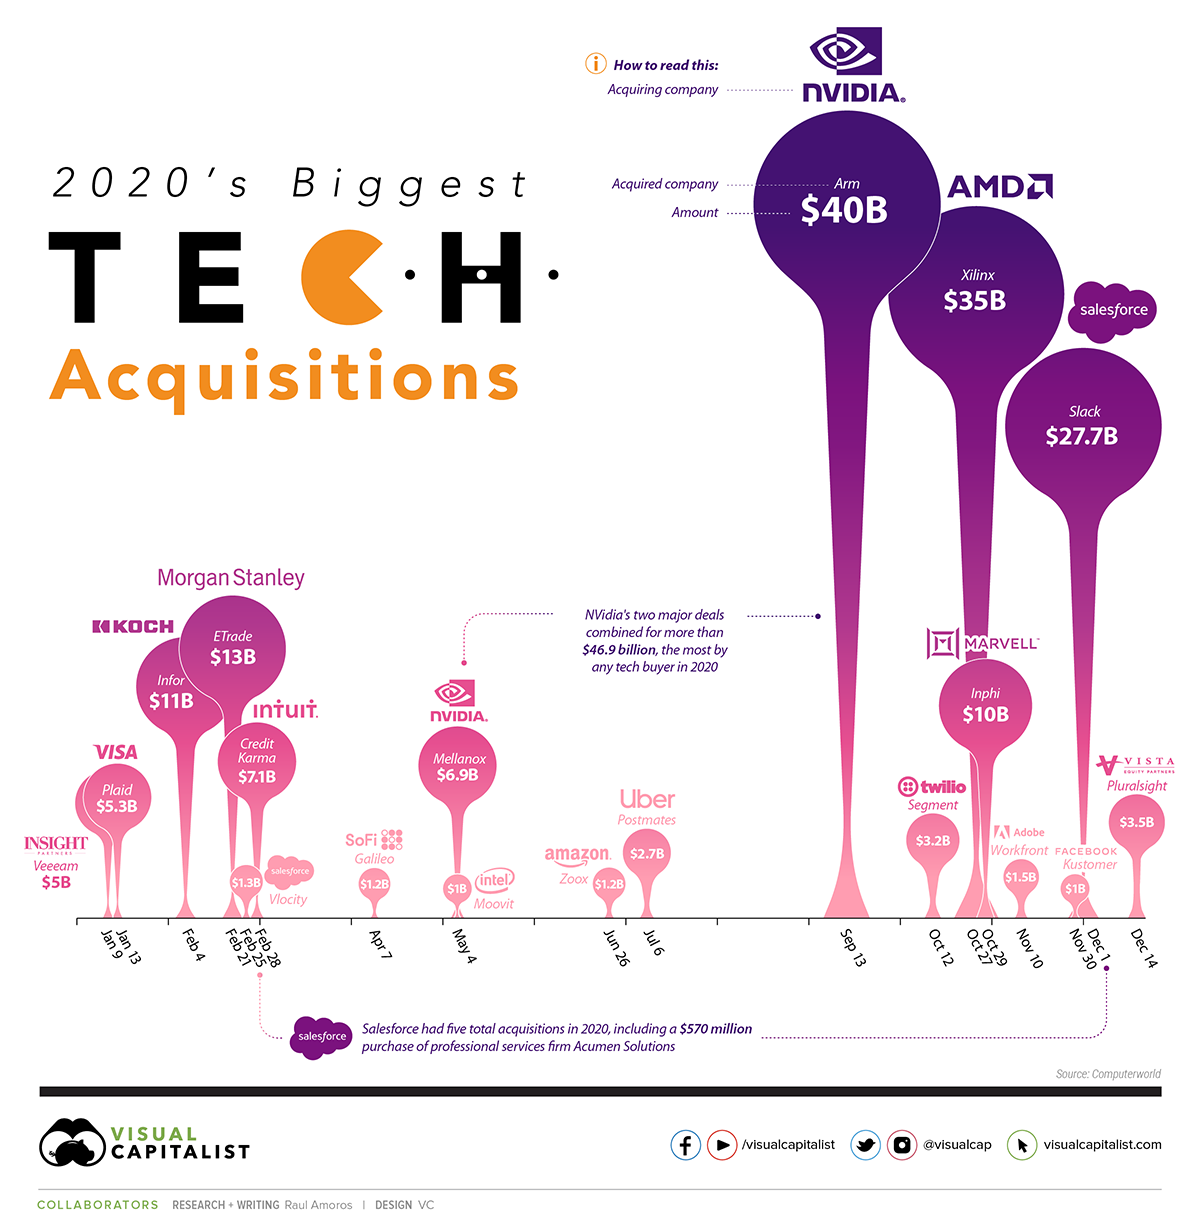 A data visualization showcasing the biggest tech acquisitions of 2020.